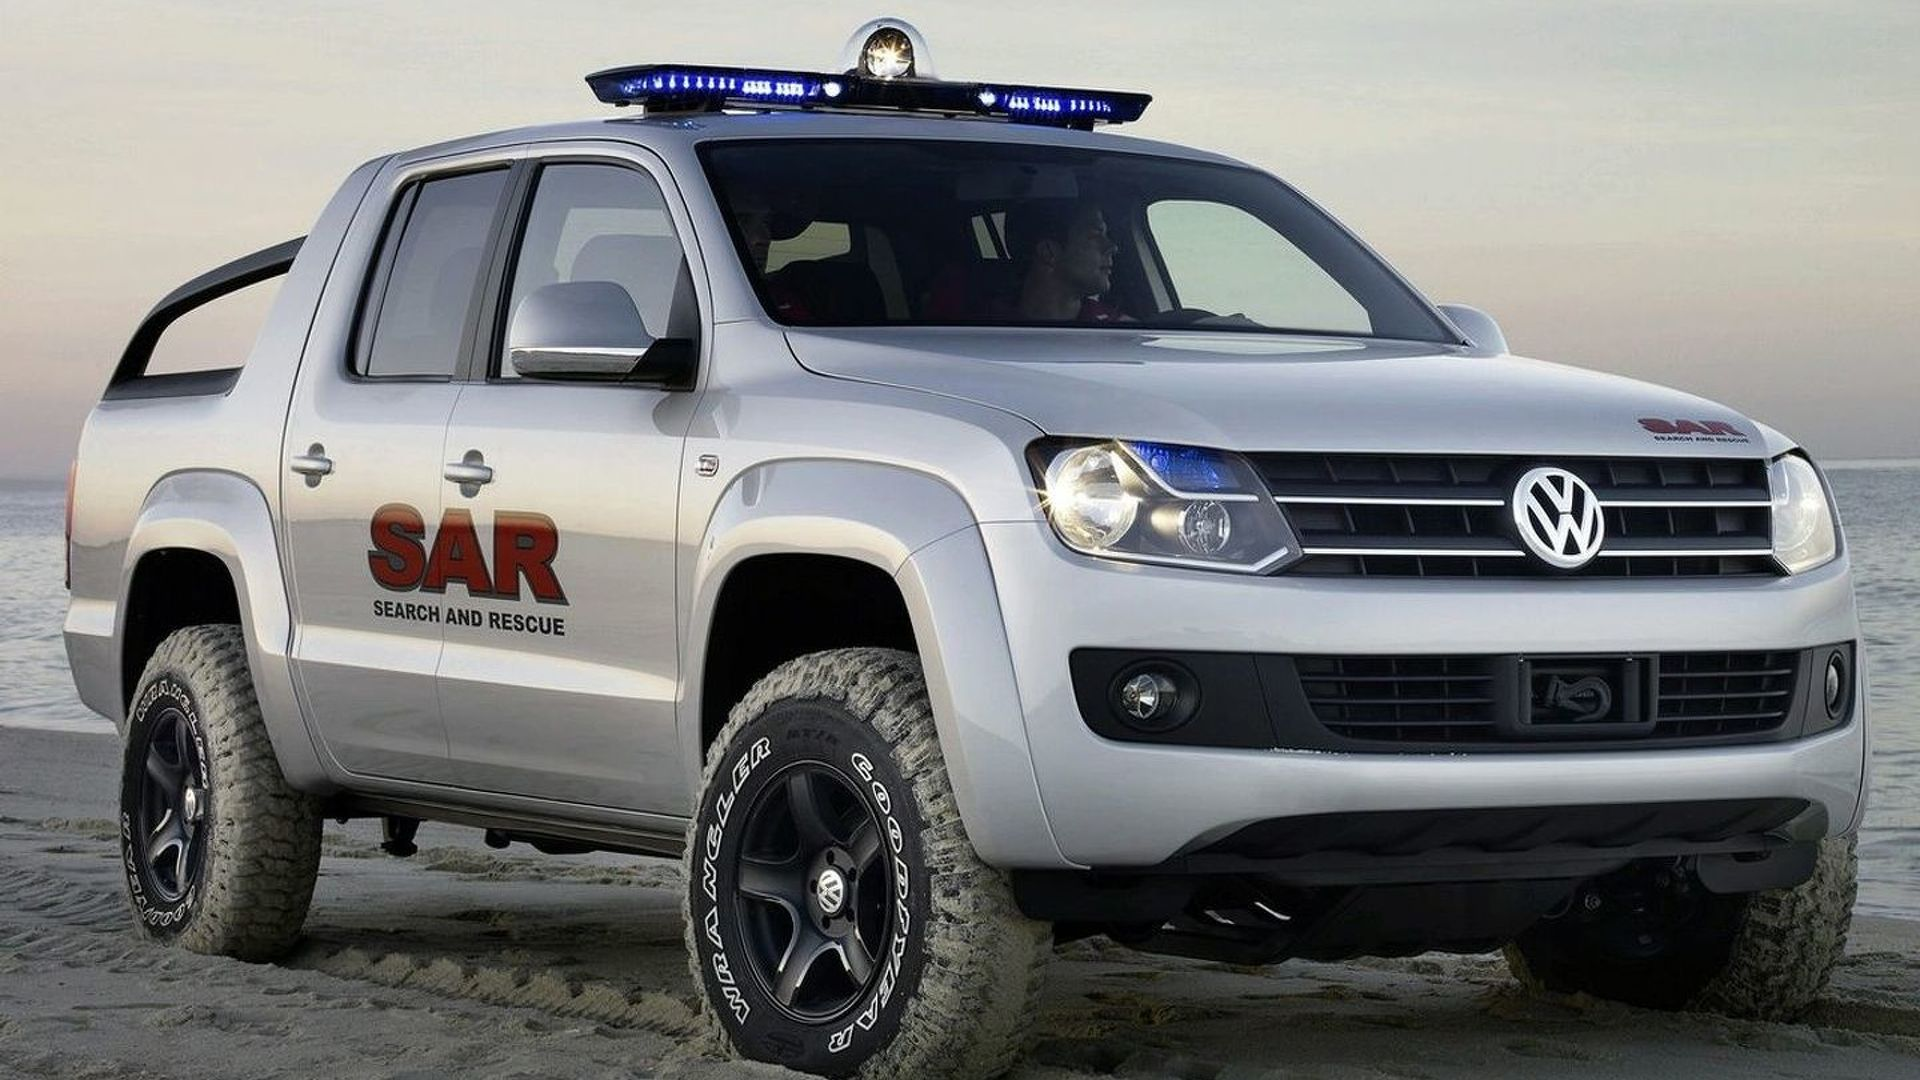 VW Amarok Pickup to be Official Vehicle for Dakar Rally